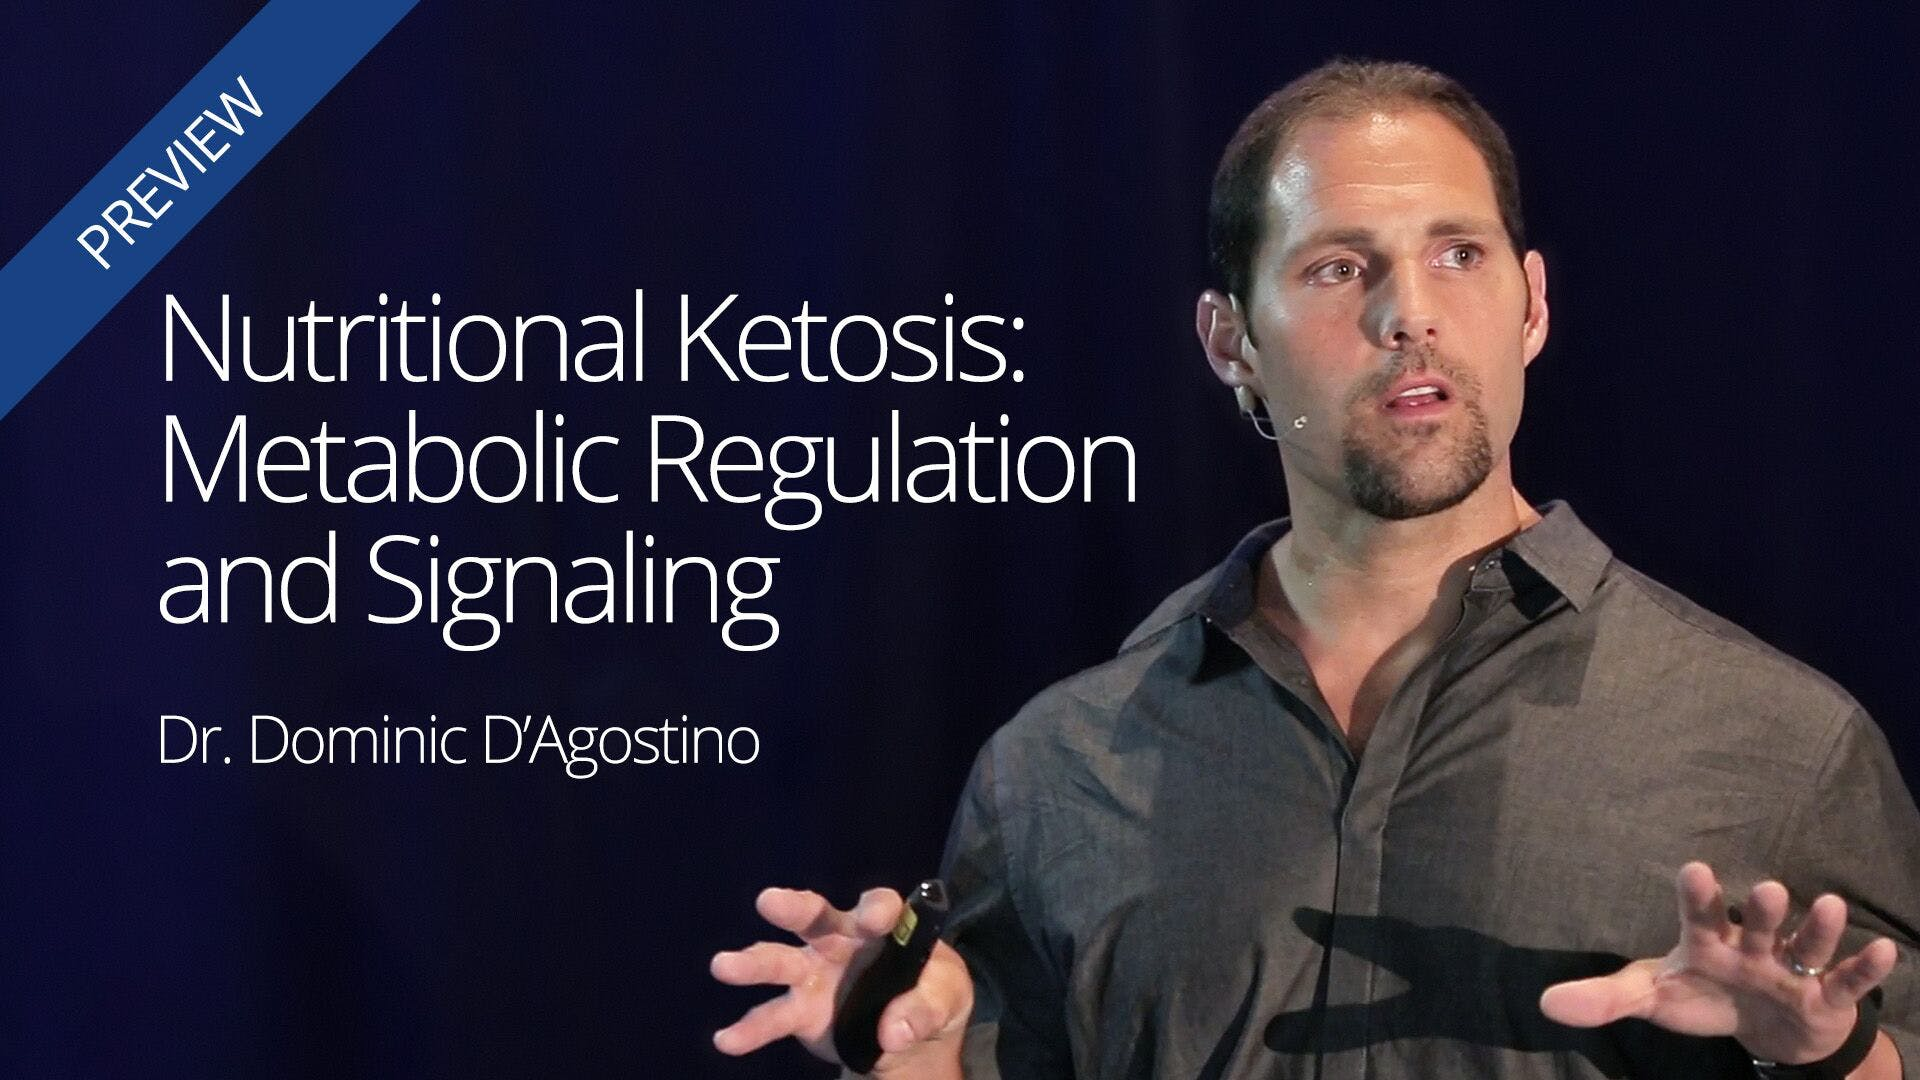 How to Use Ketosis to Achieve Peak Performance